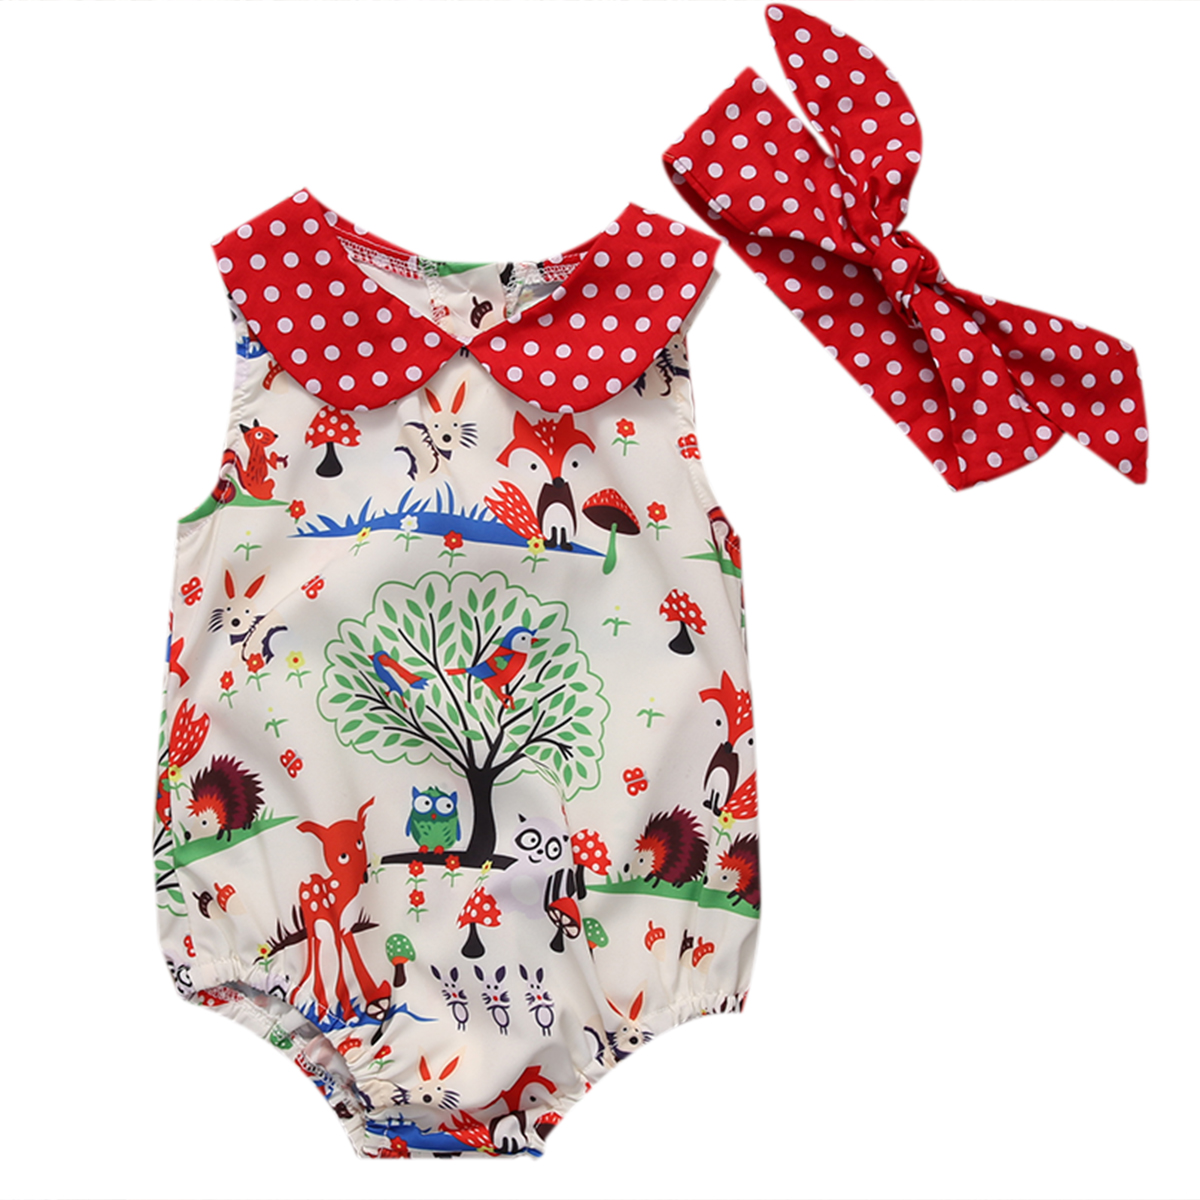 2 Pc Summer Baby Girl Dot Cartoon Print Romper + Opaska Peter Pan Collar Kombinezon Odzież Stroje Sunsuit